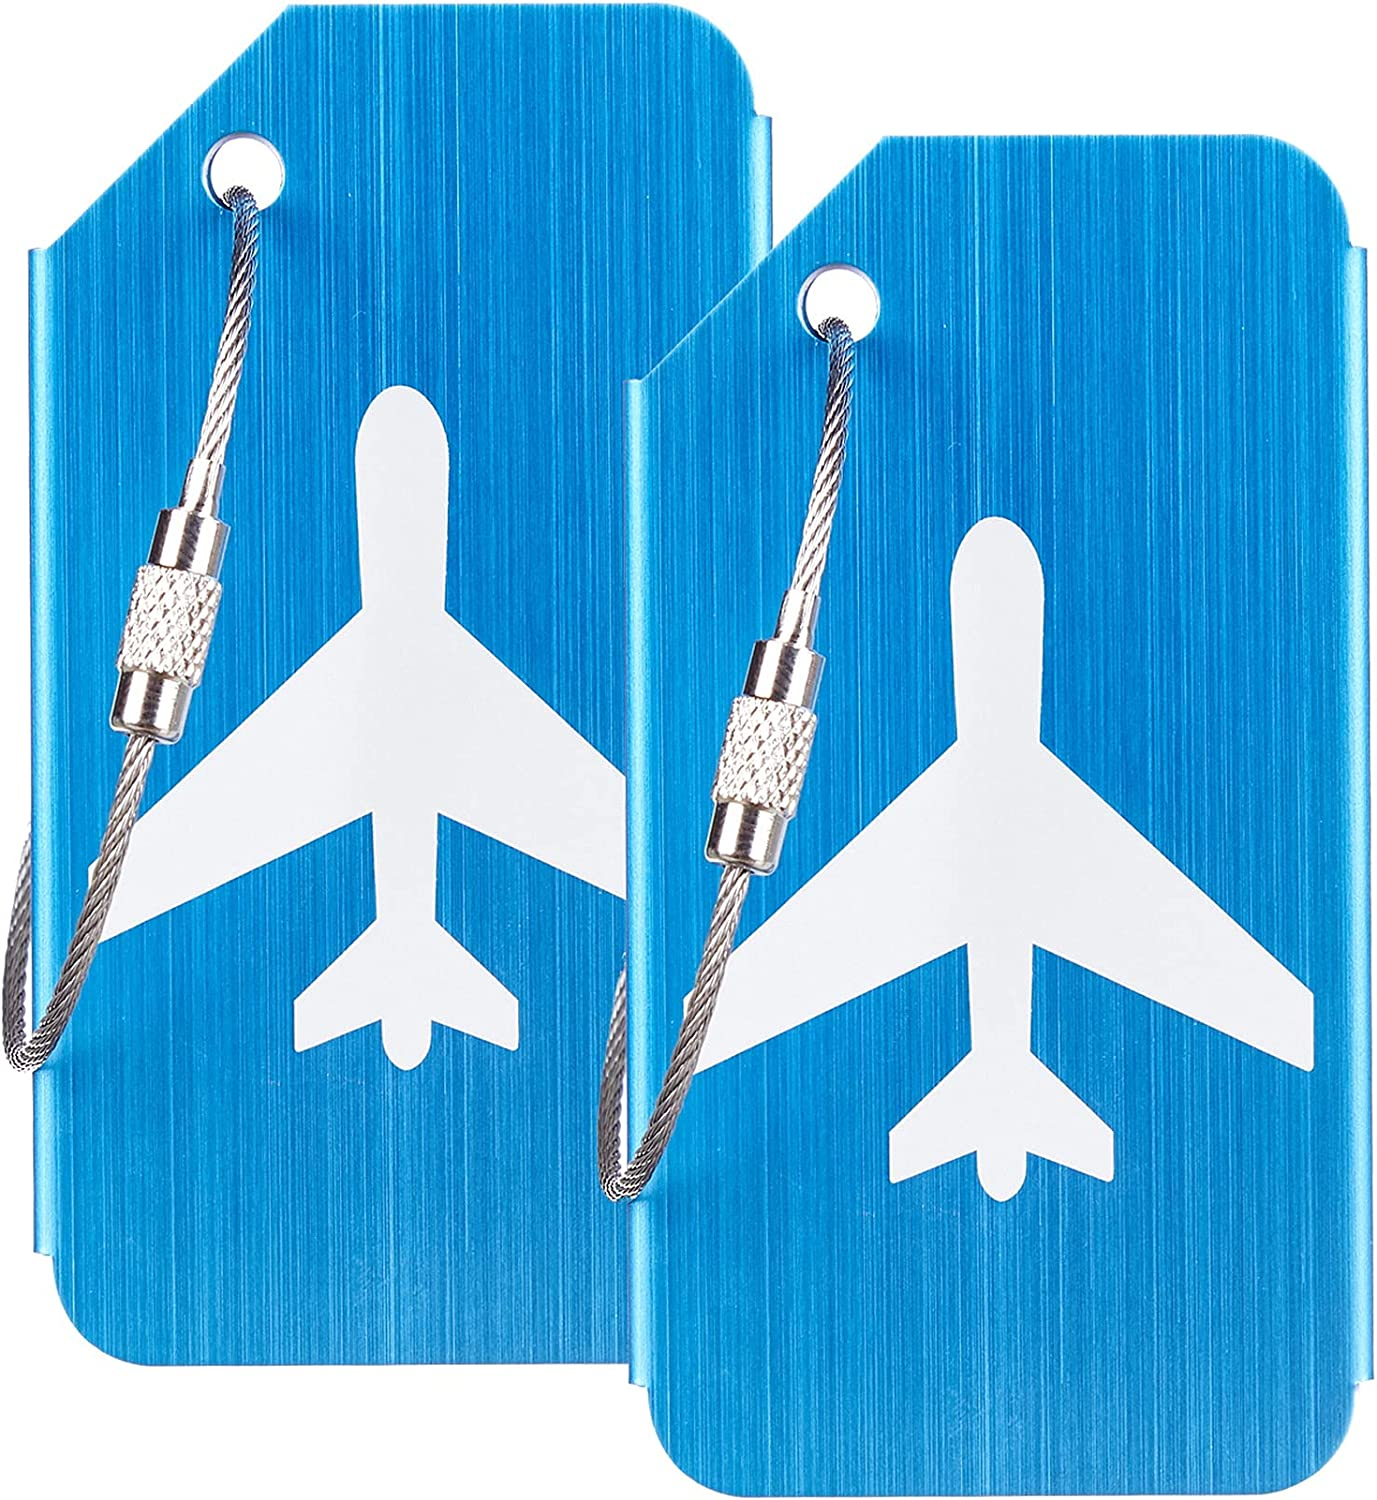 Gostwo Leather Chicago Mall Luggage Tags Outlet ☆ Free Shipping Bag Tag 2 Stainless Steel Blue Loop